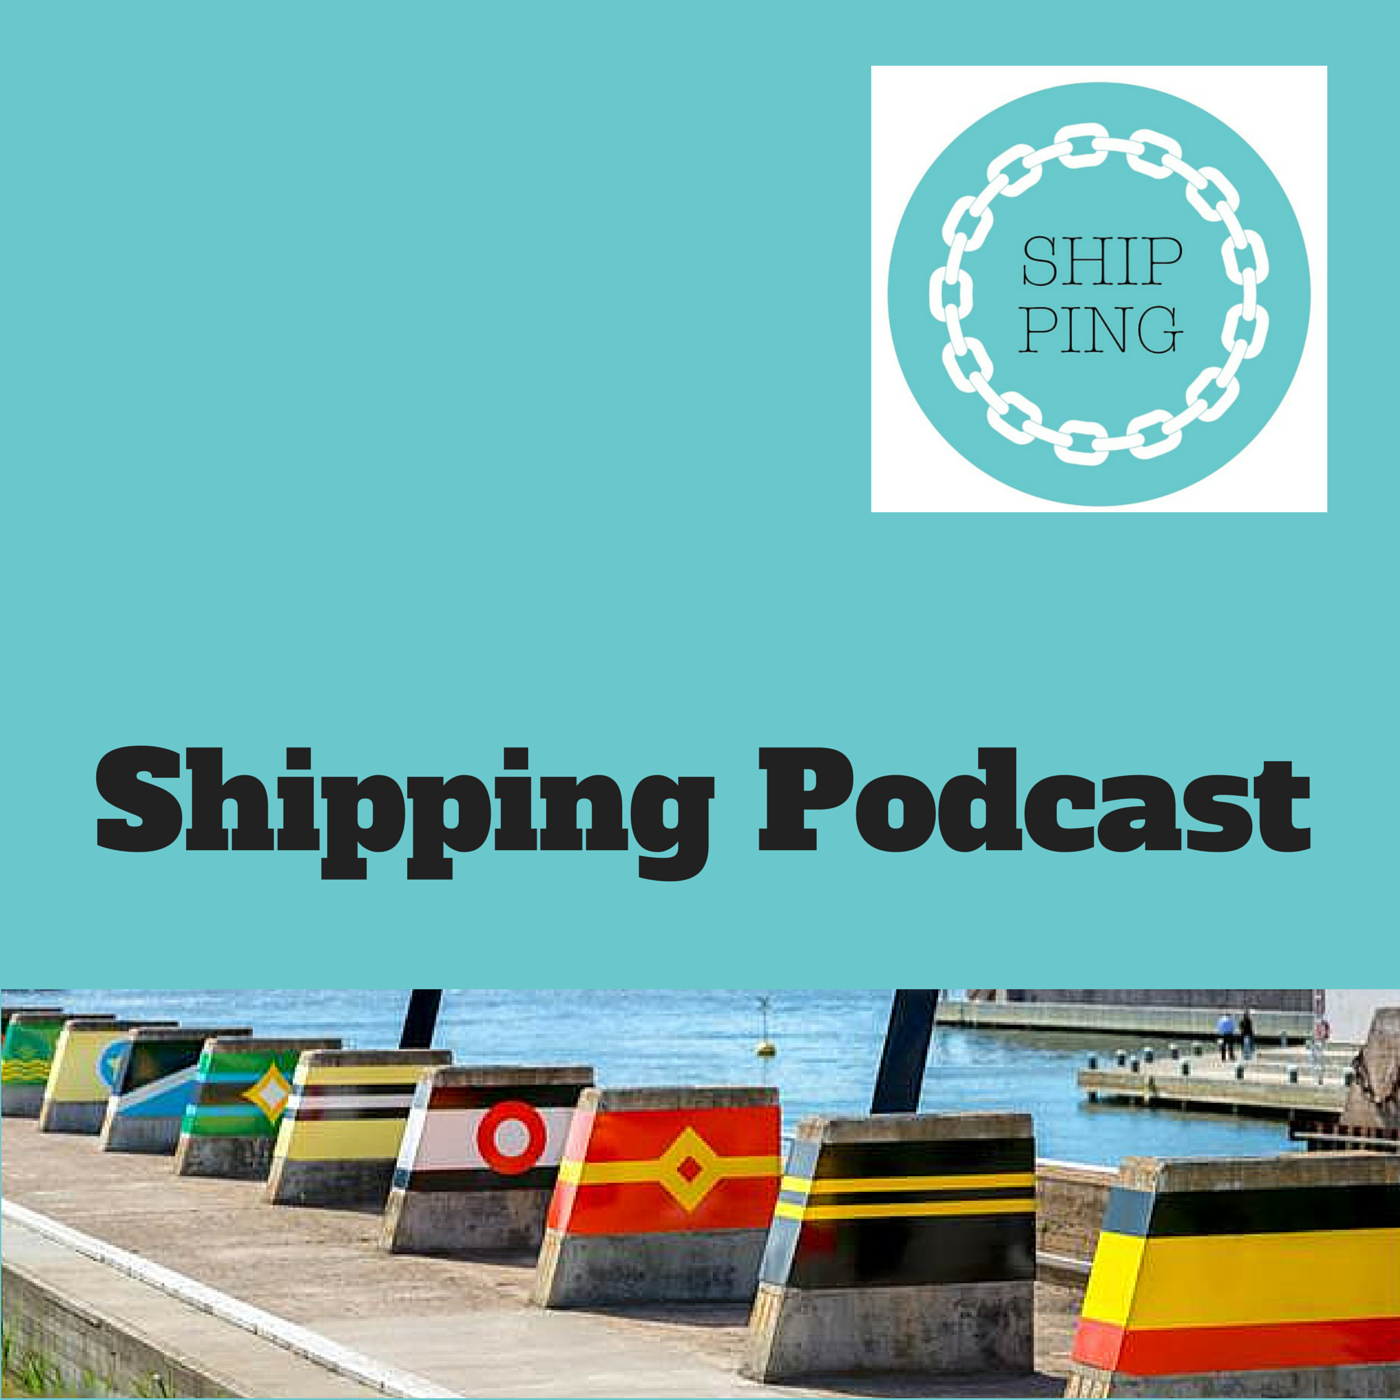 gigs-lena-blogg-Shippingpodcast